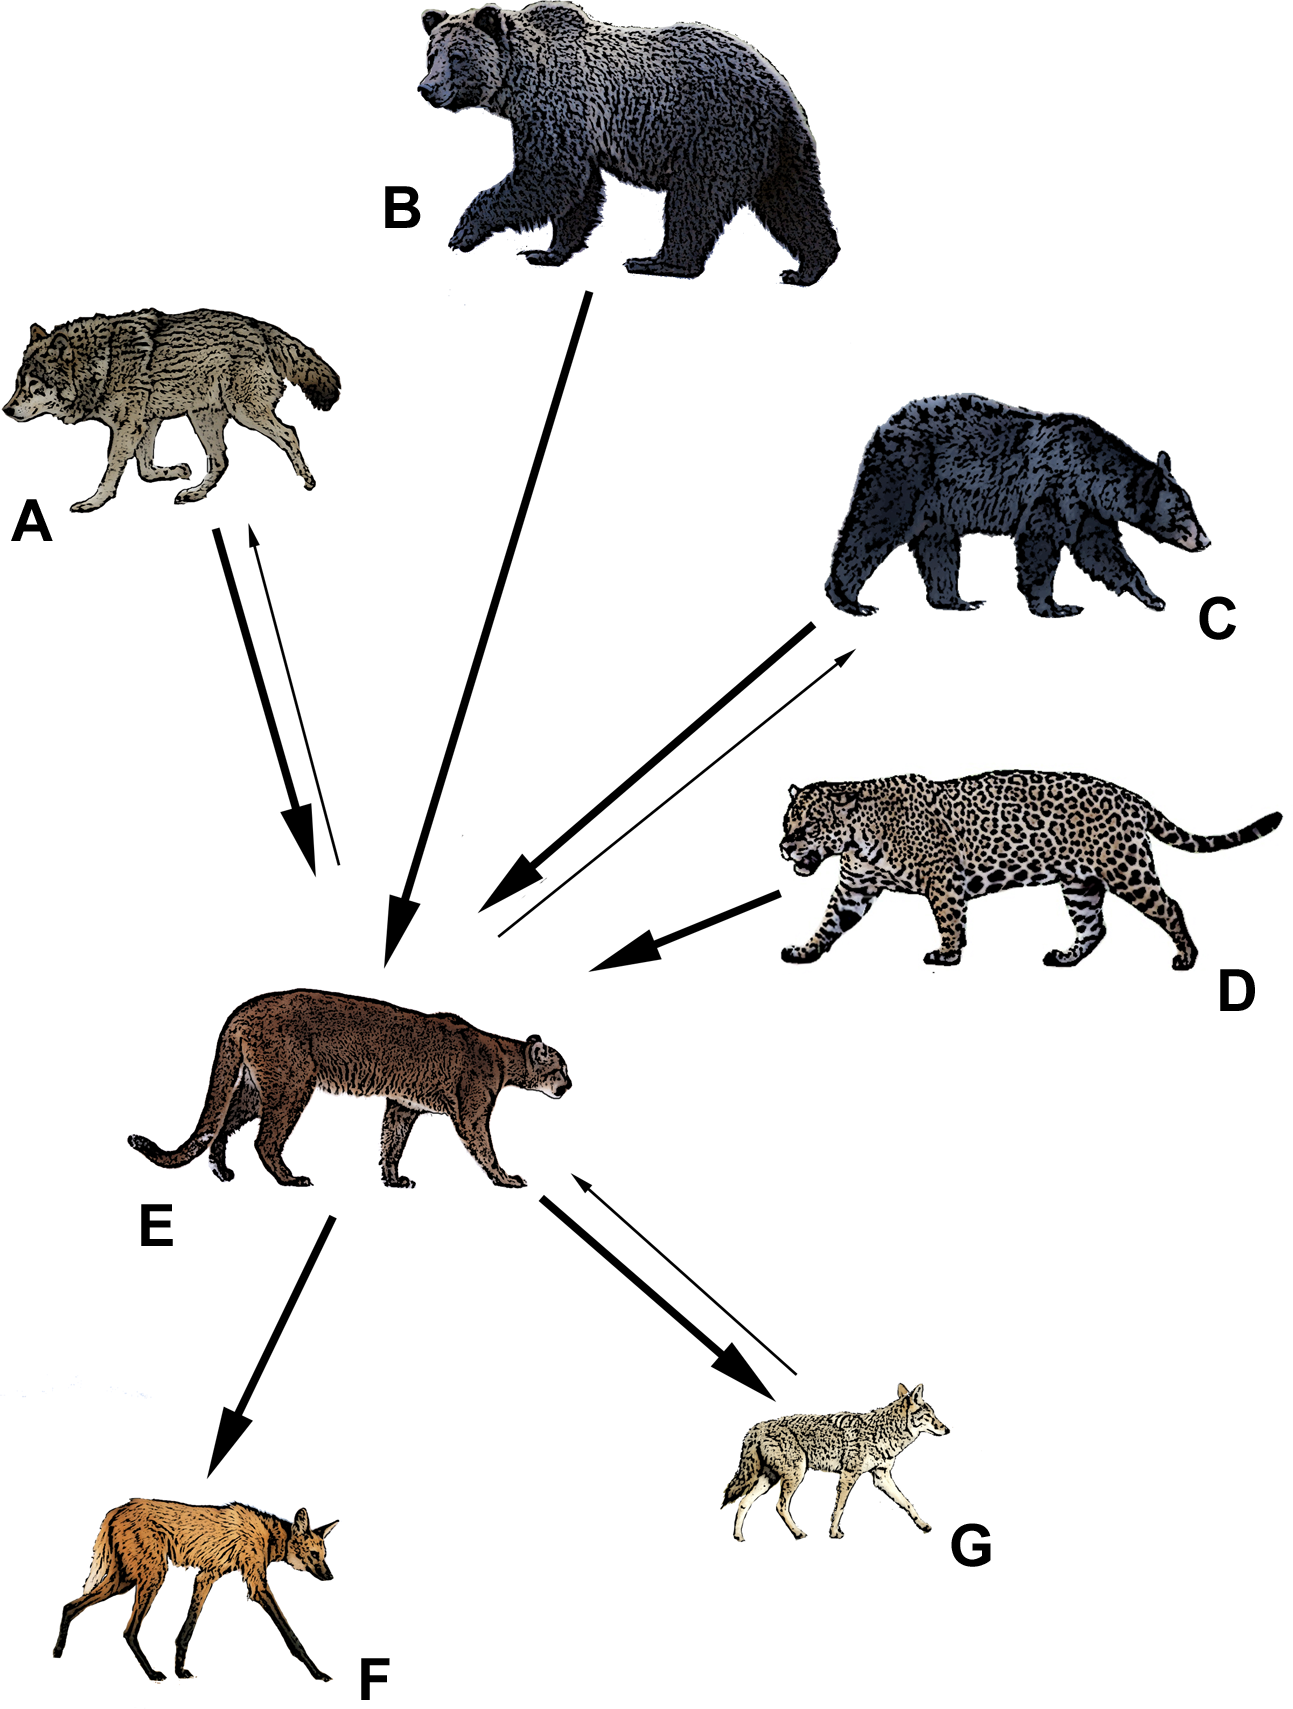 Puma energy clipart graduate program jpg library stock Are pumas subordinate carnivores, and does it matter? [PeerJ] jpg library stock